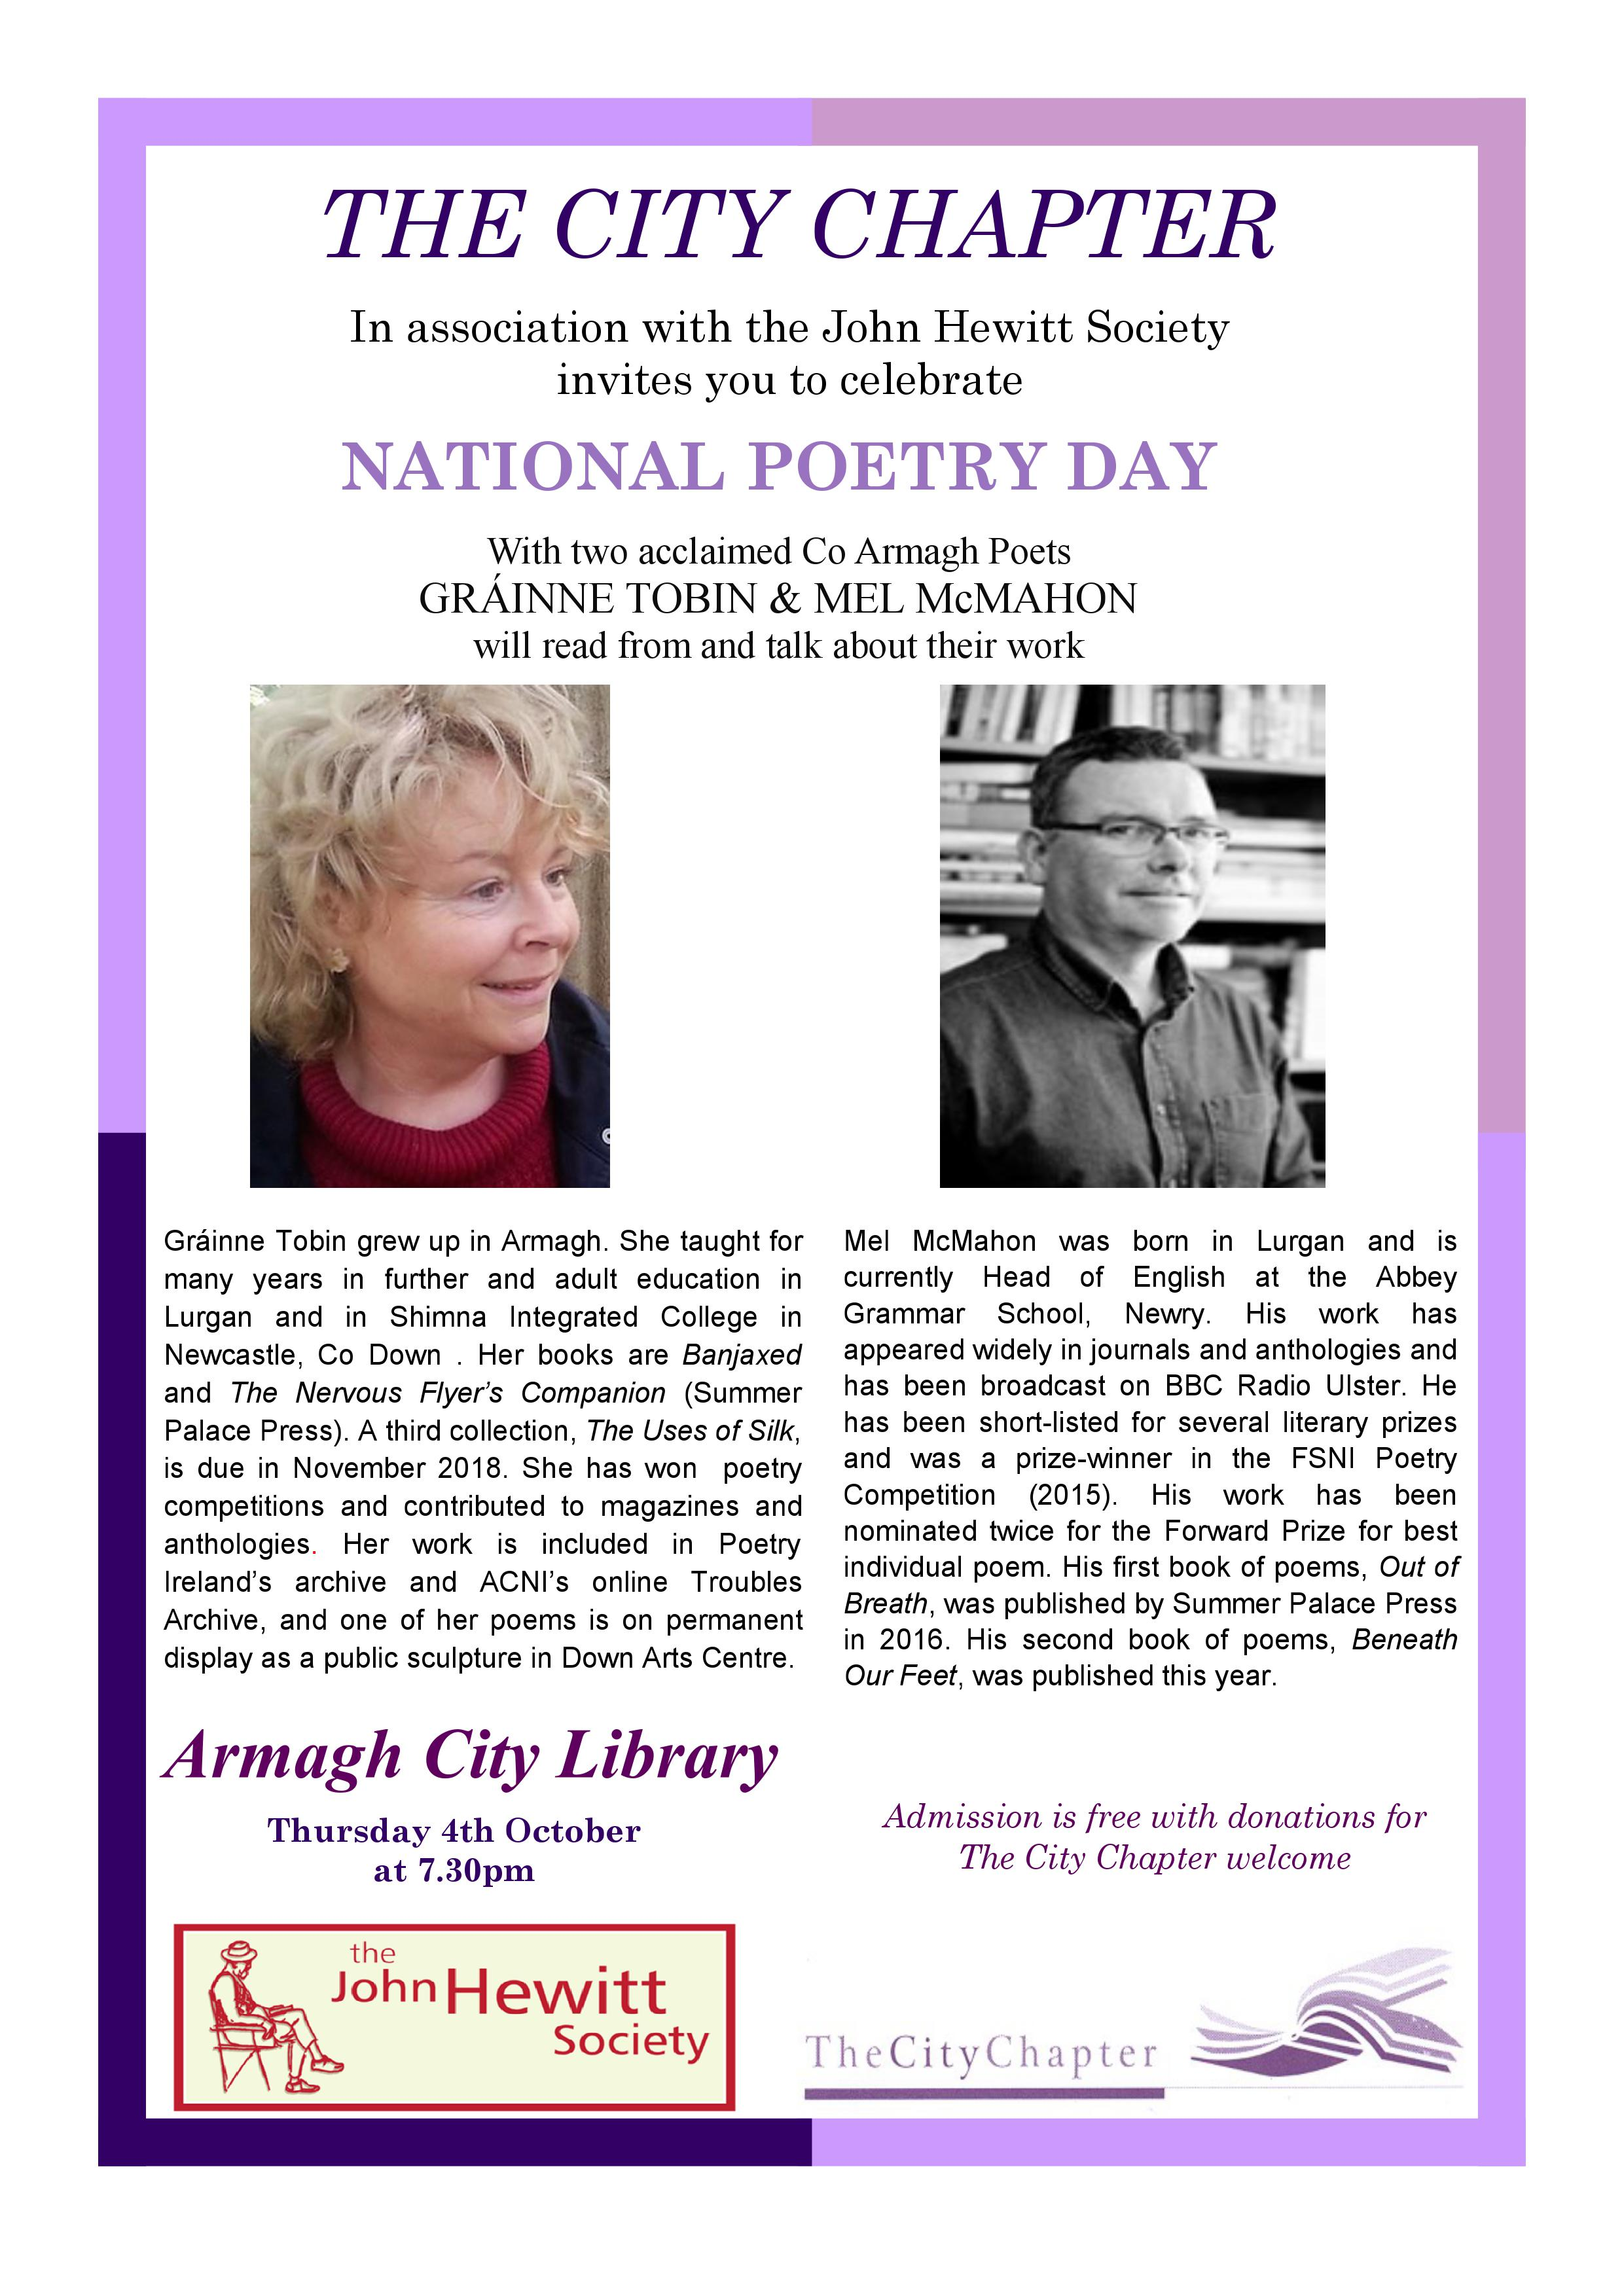 National Poetry Day in Armagh 2018